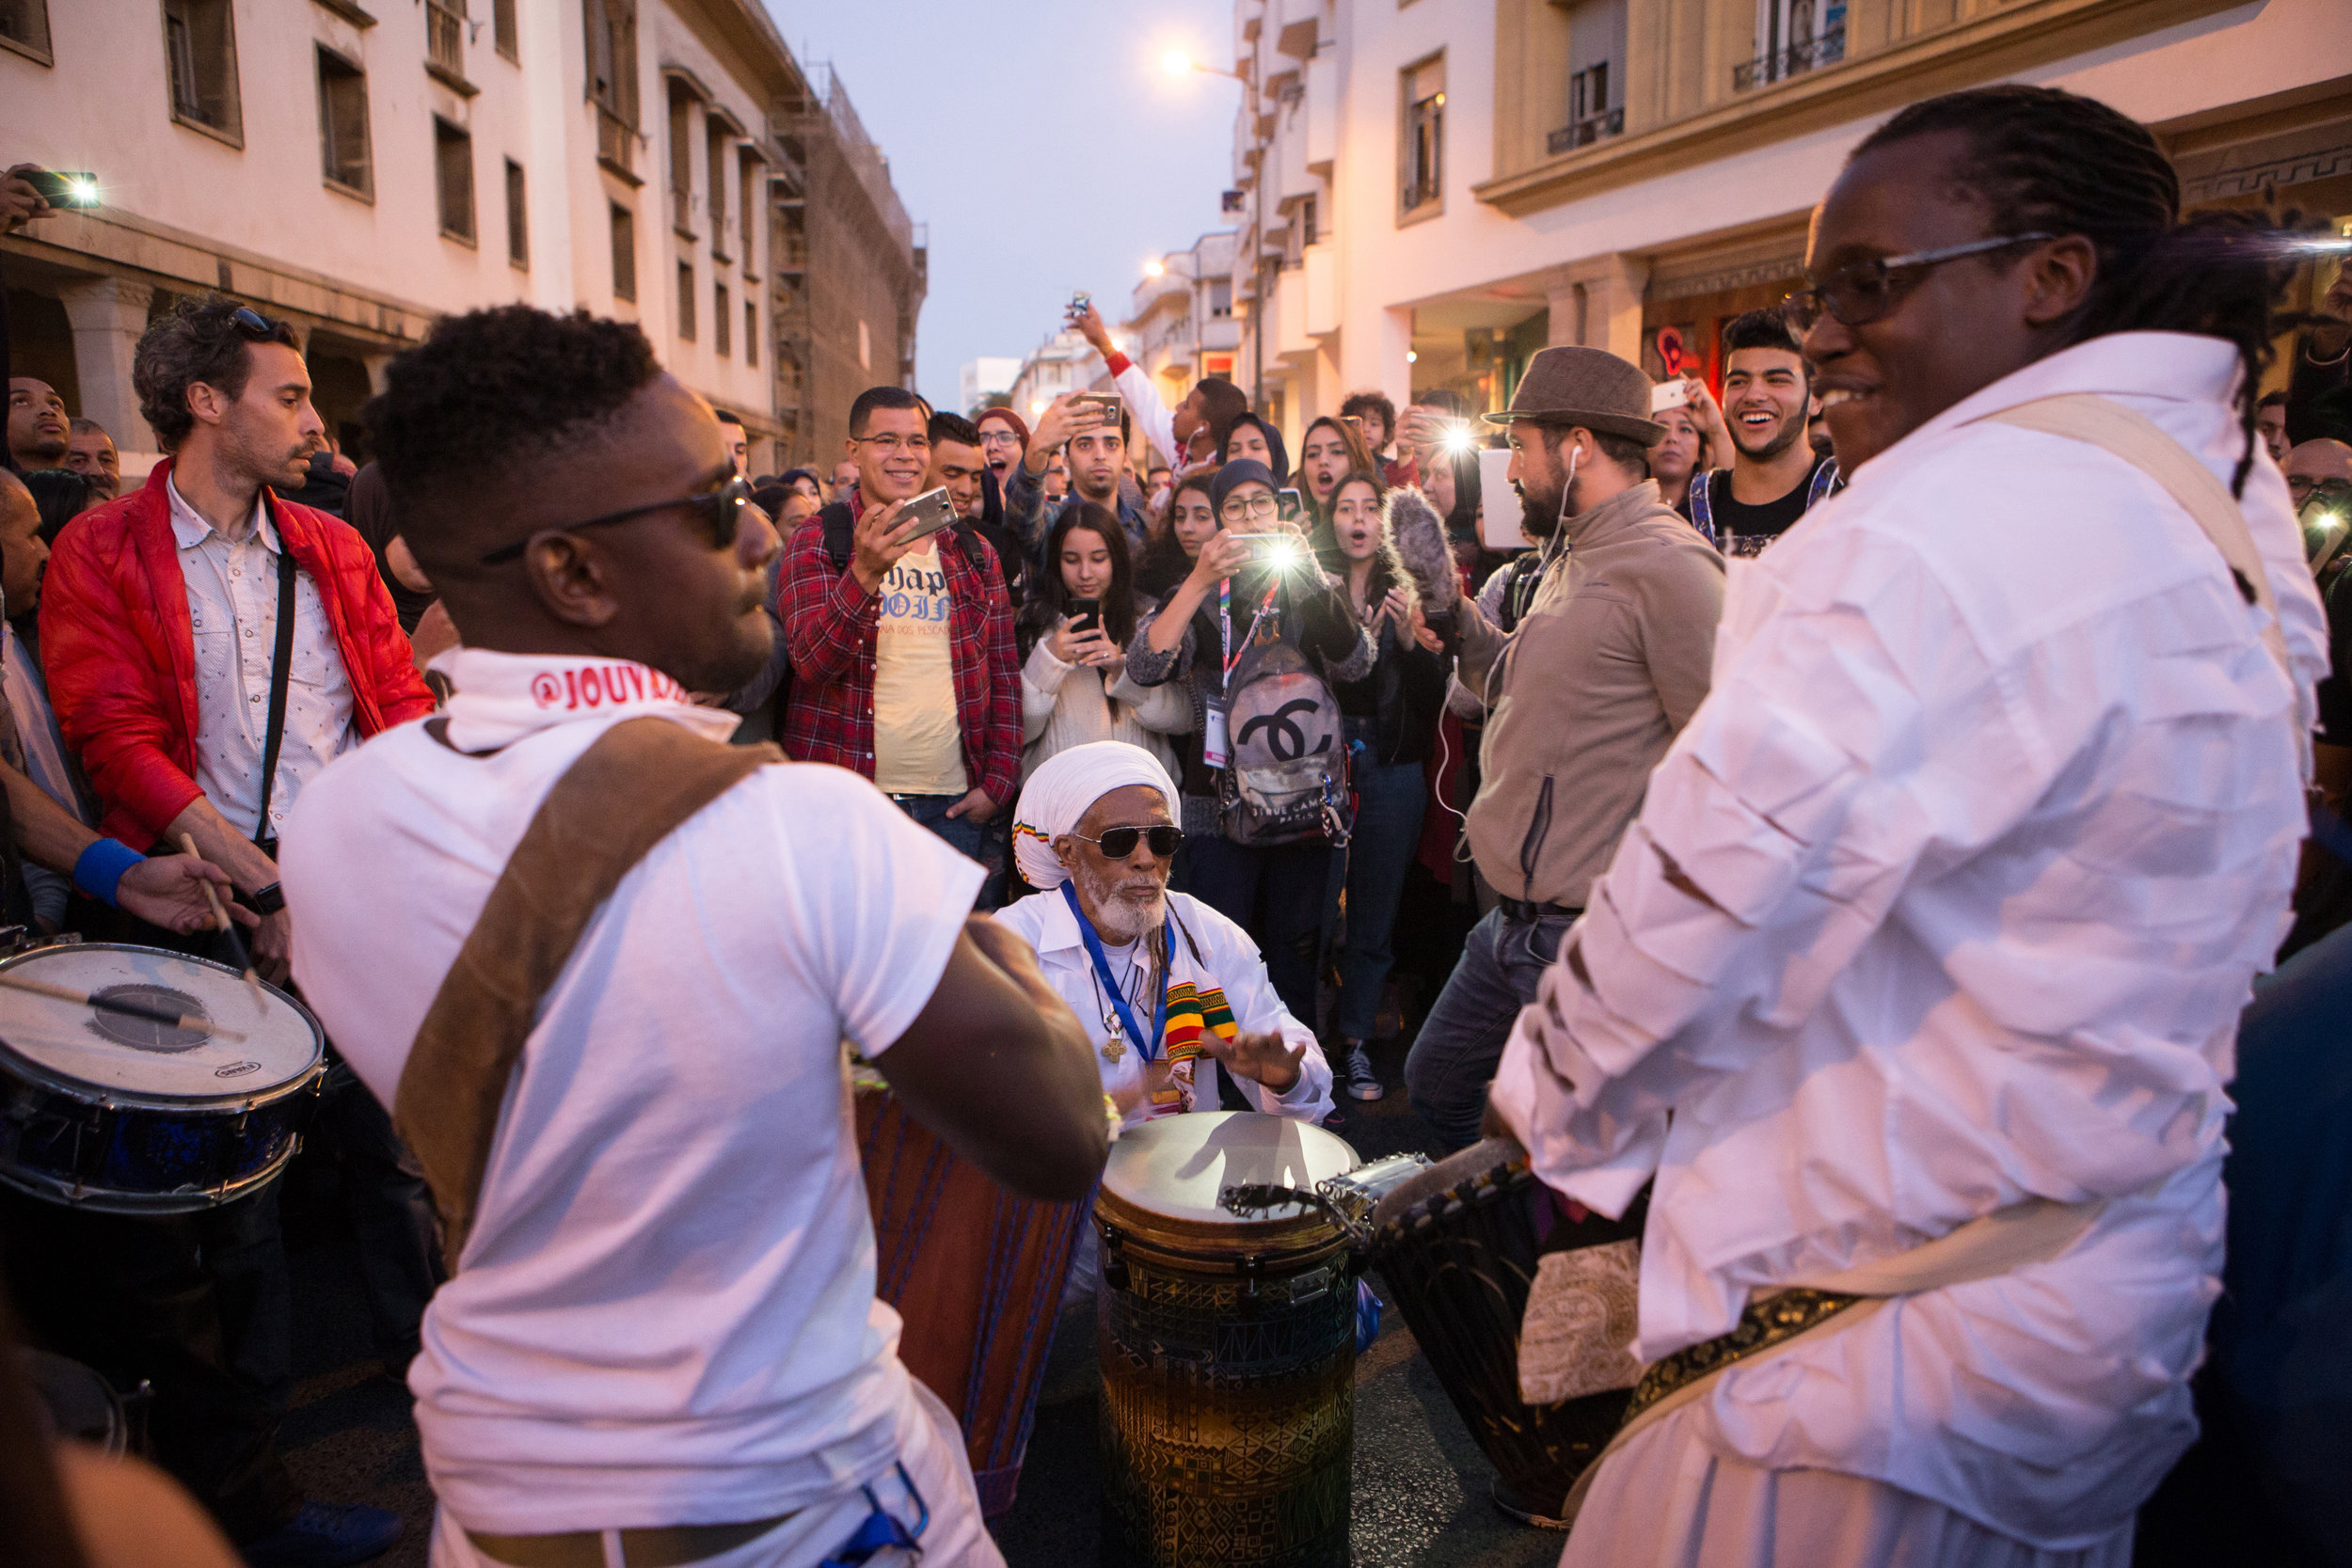 JouvayFest drummers delighted passersbys with carnival rhythms on the streets of Rabat